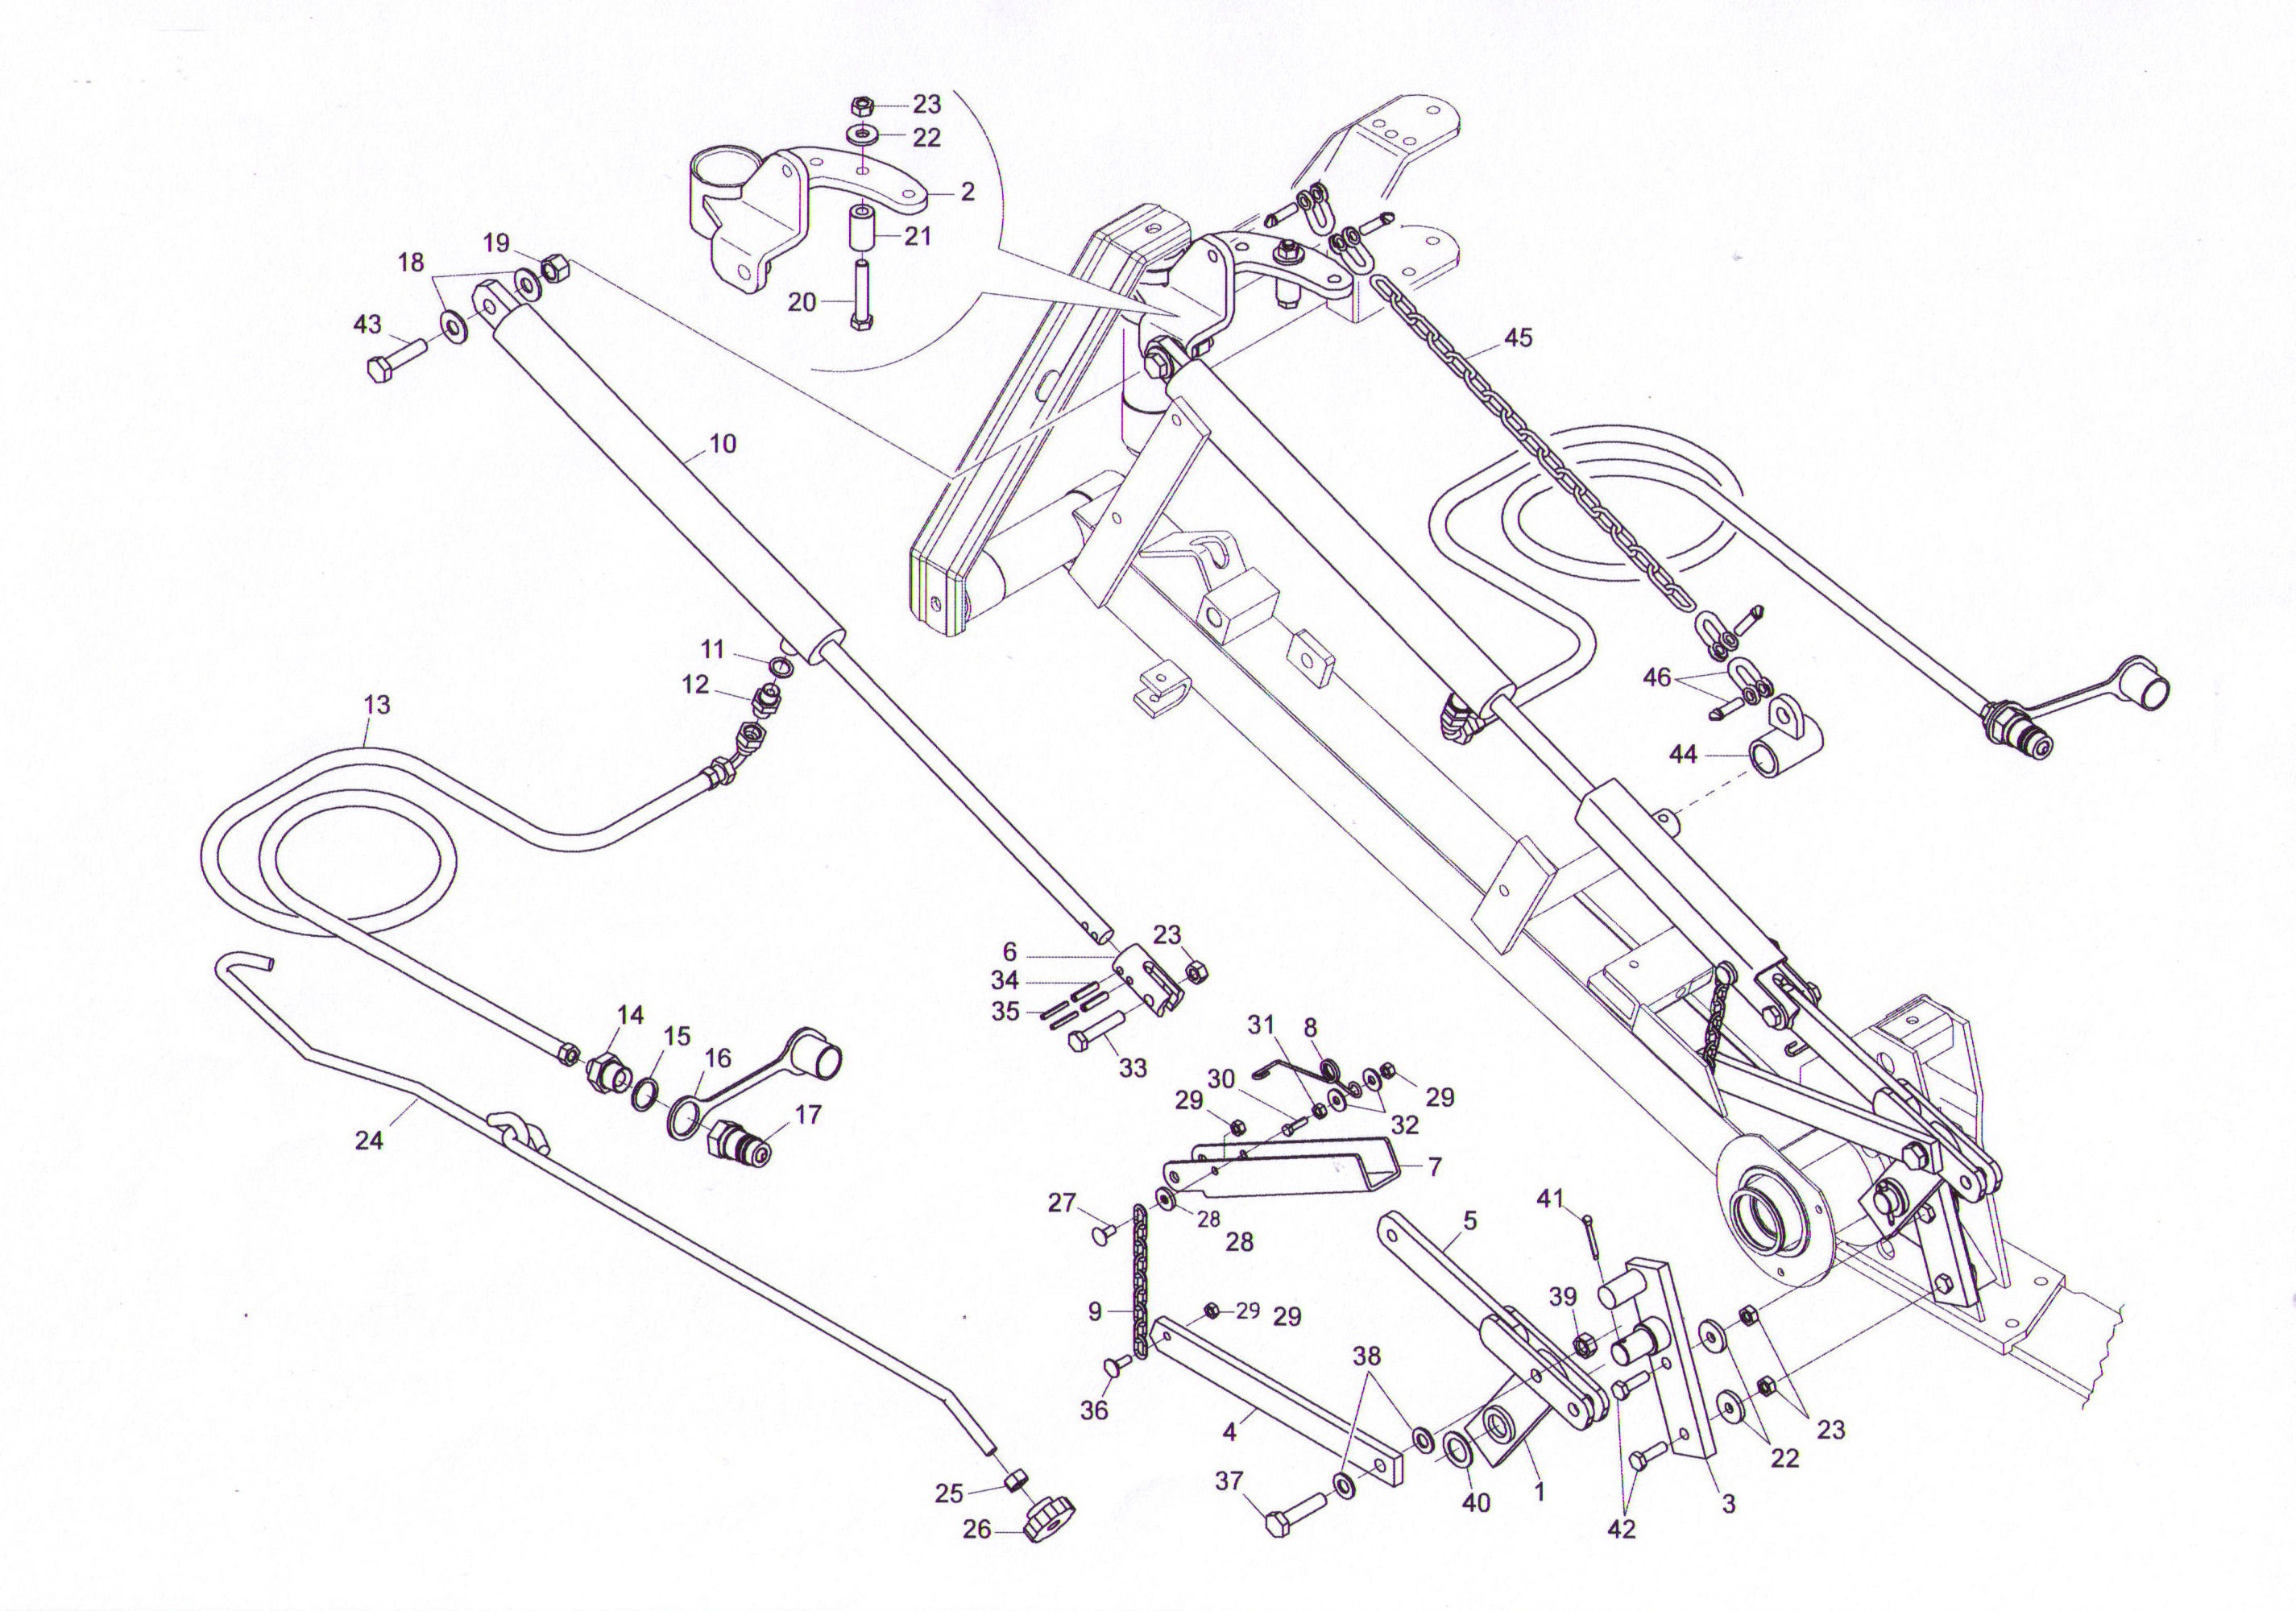 Kuhn Parts Diagrams • Wiring And Engine Diagram